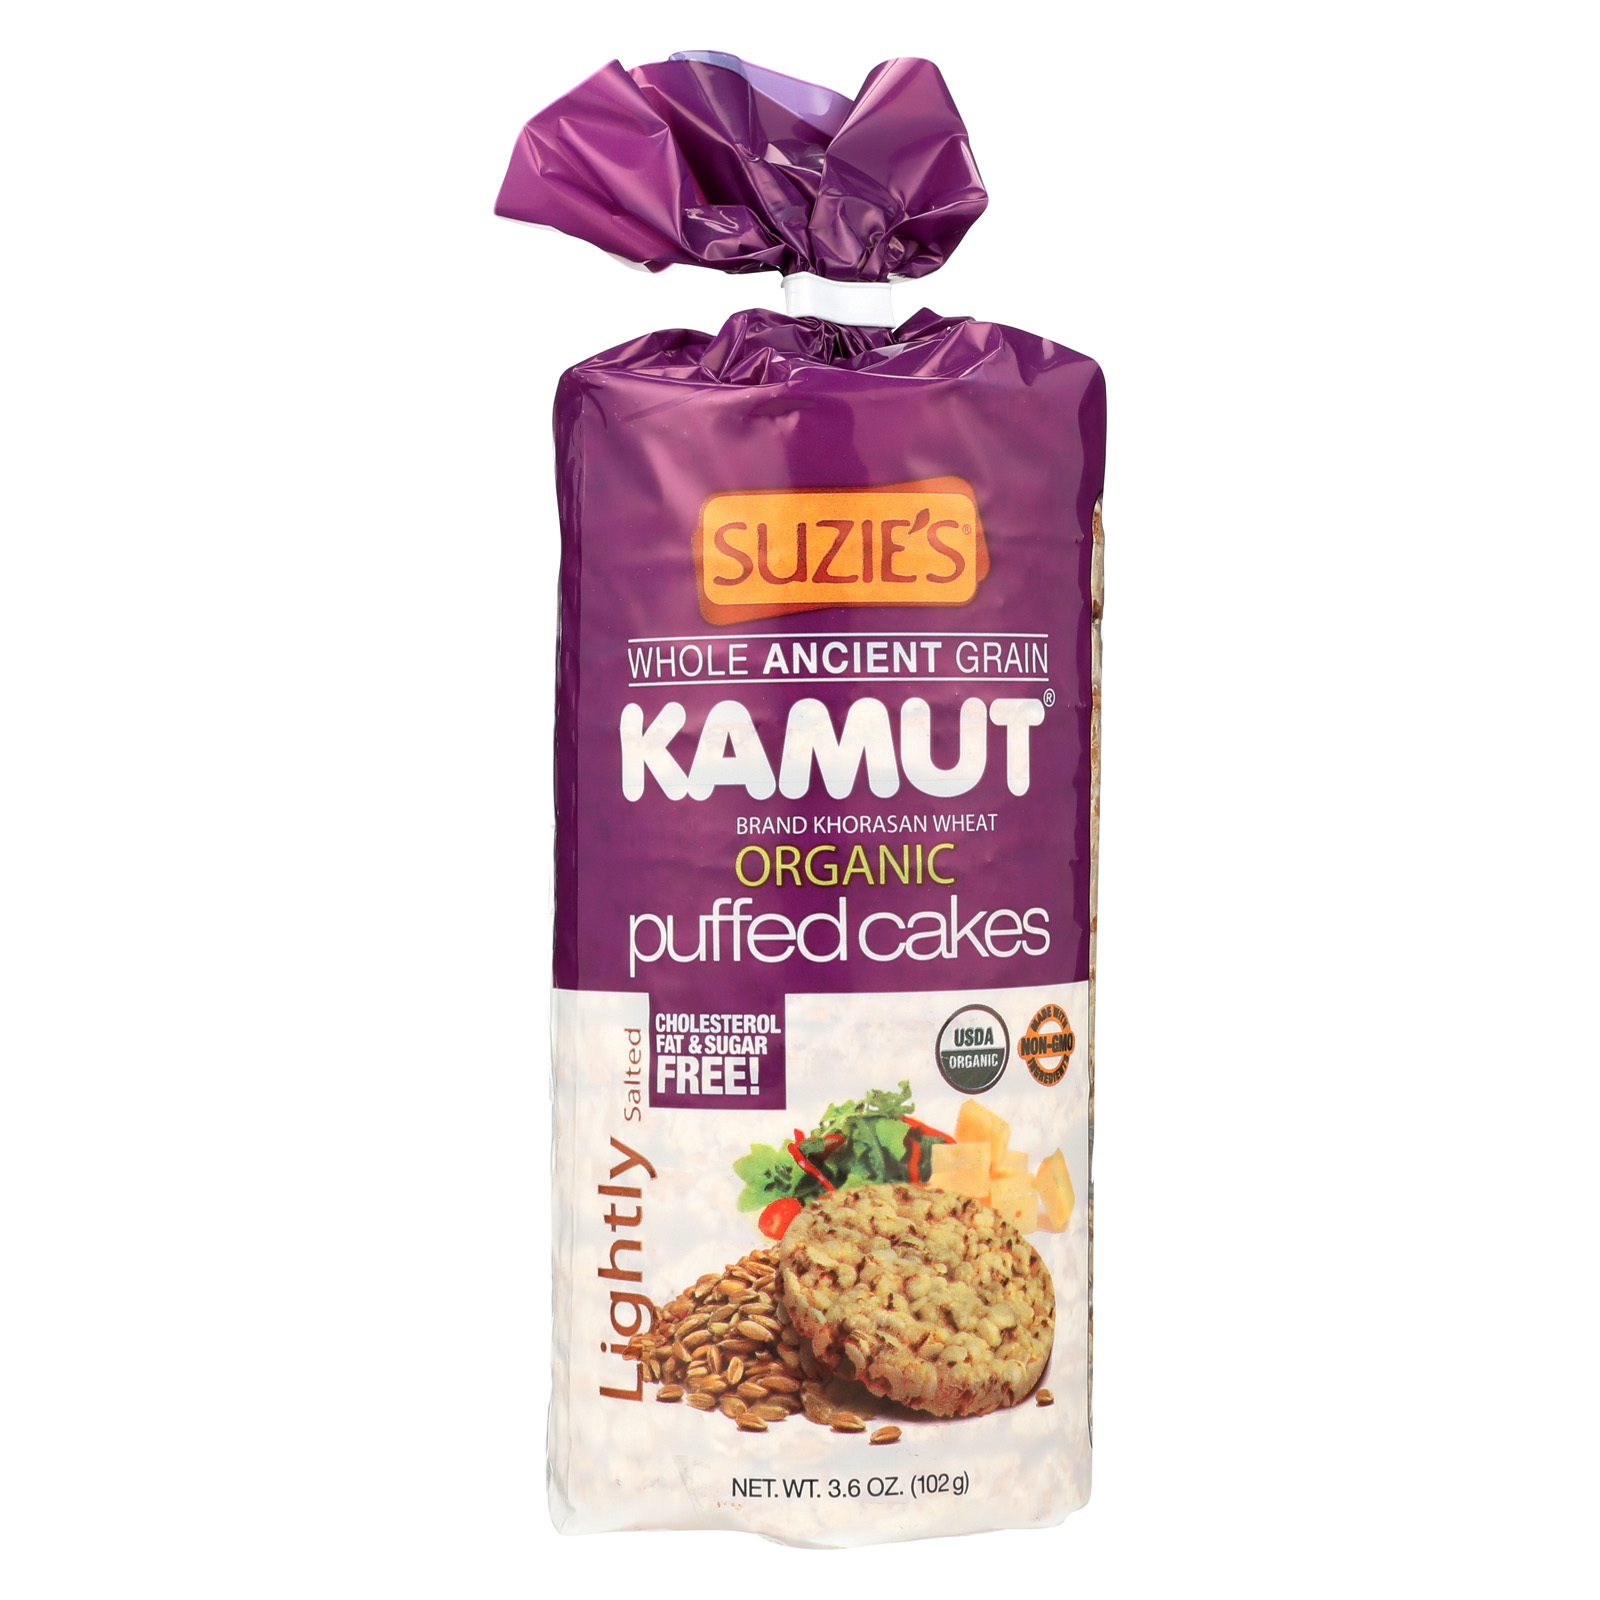 Suzie's Kamut Puffed Cakes - Lightly Salted - Case of 12 - 3.6 oz.